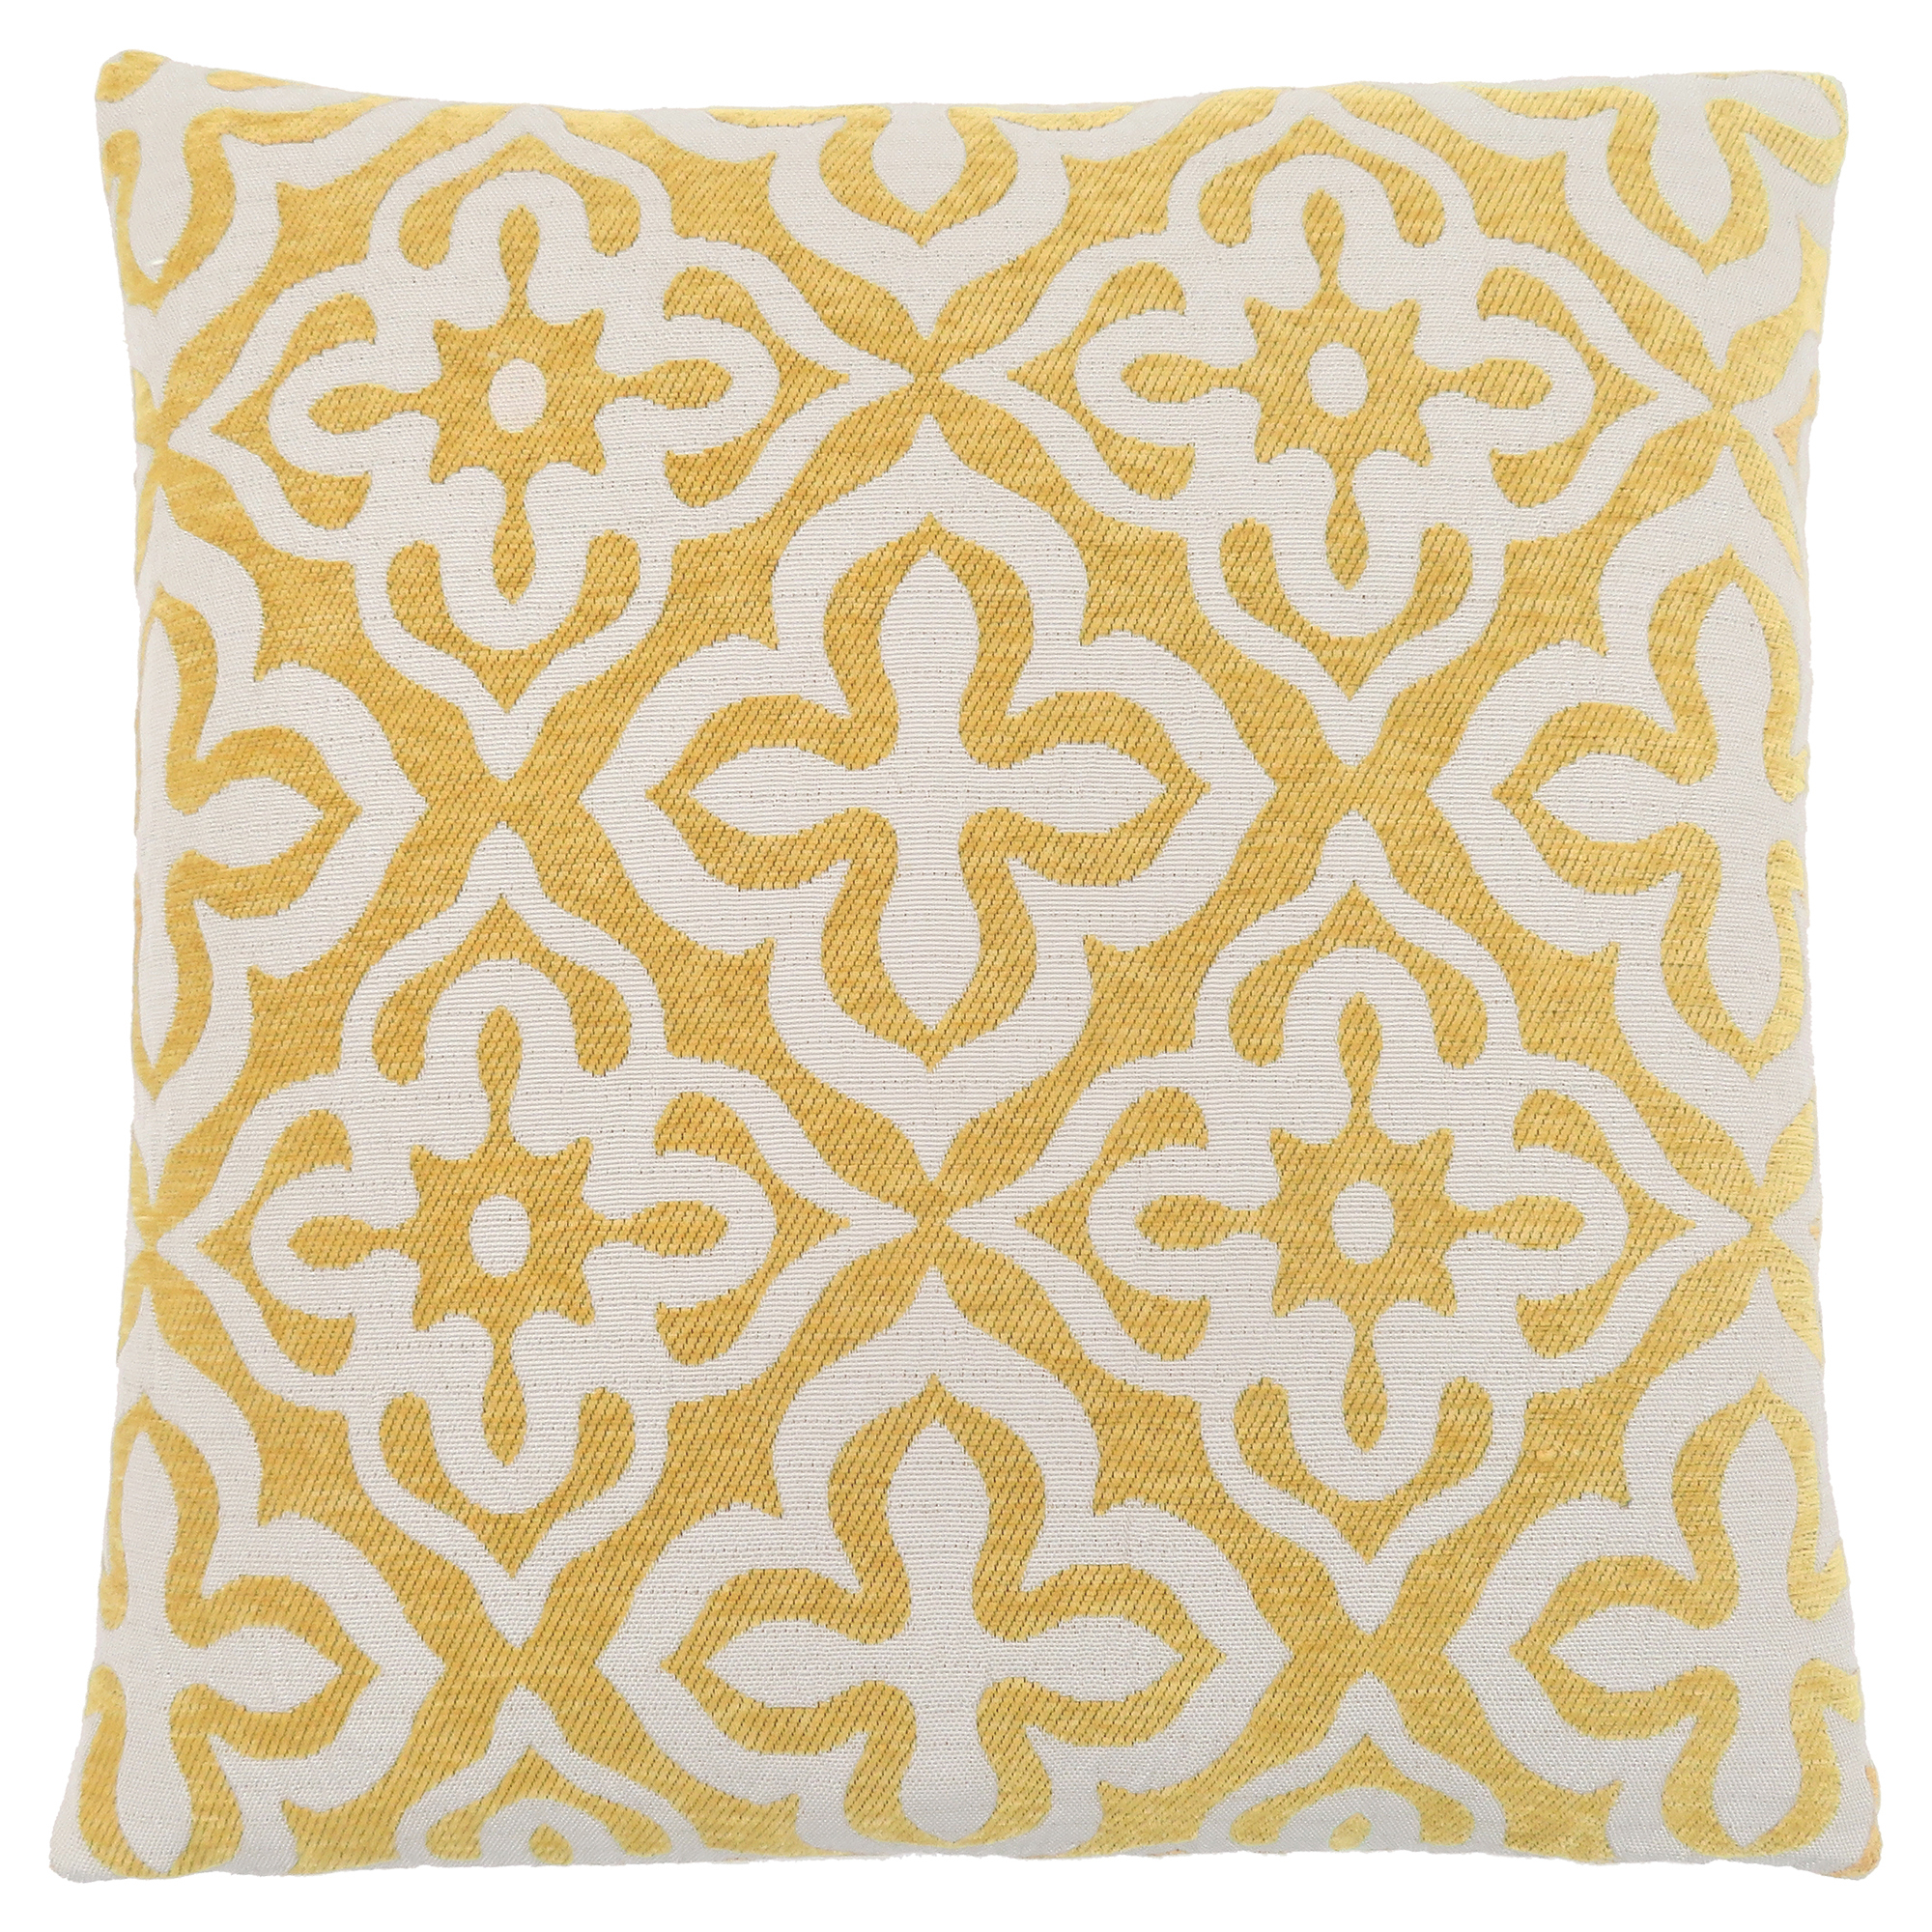 "PILLOW - 18""X 18"" / YELLOW MOTIF DESIGN / 1PC"